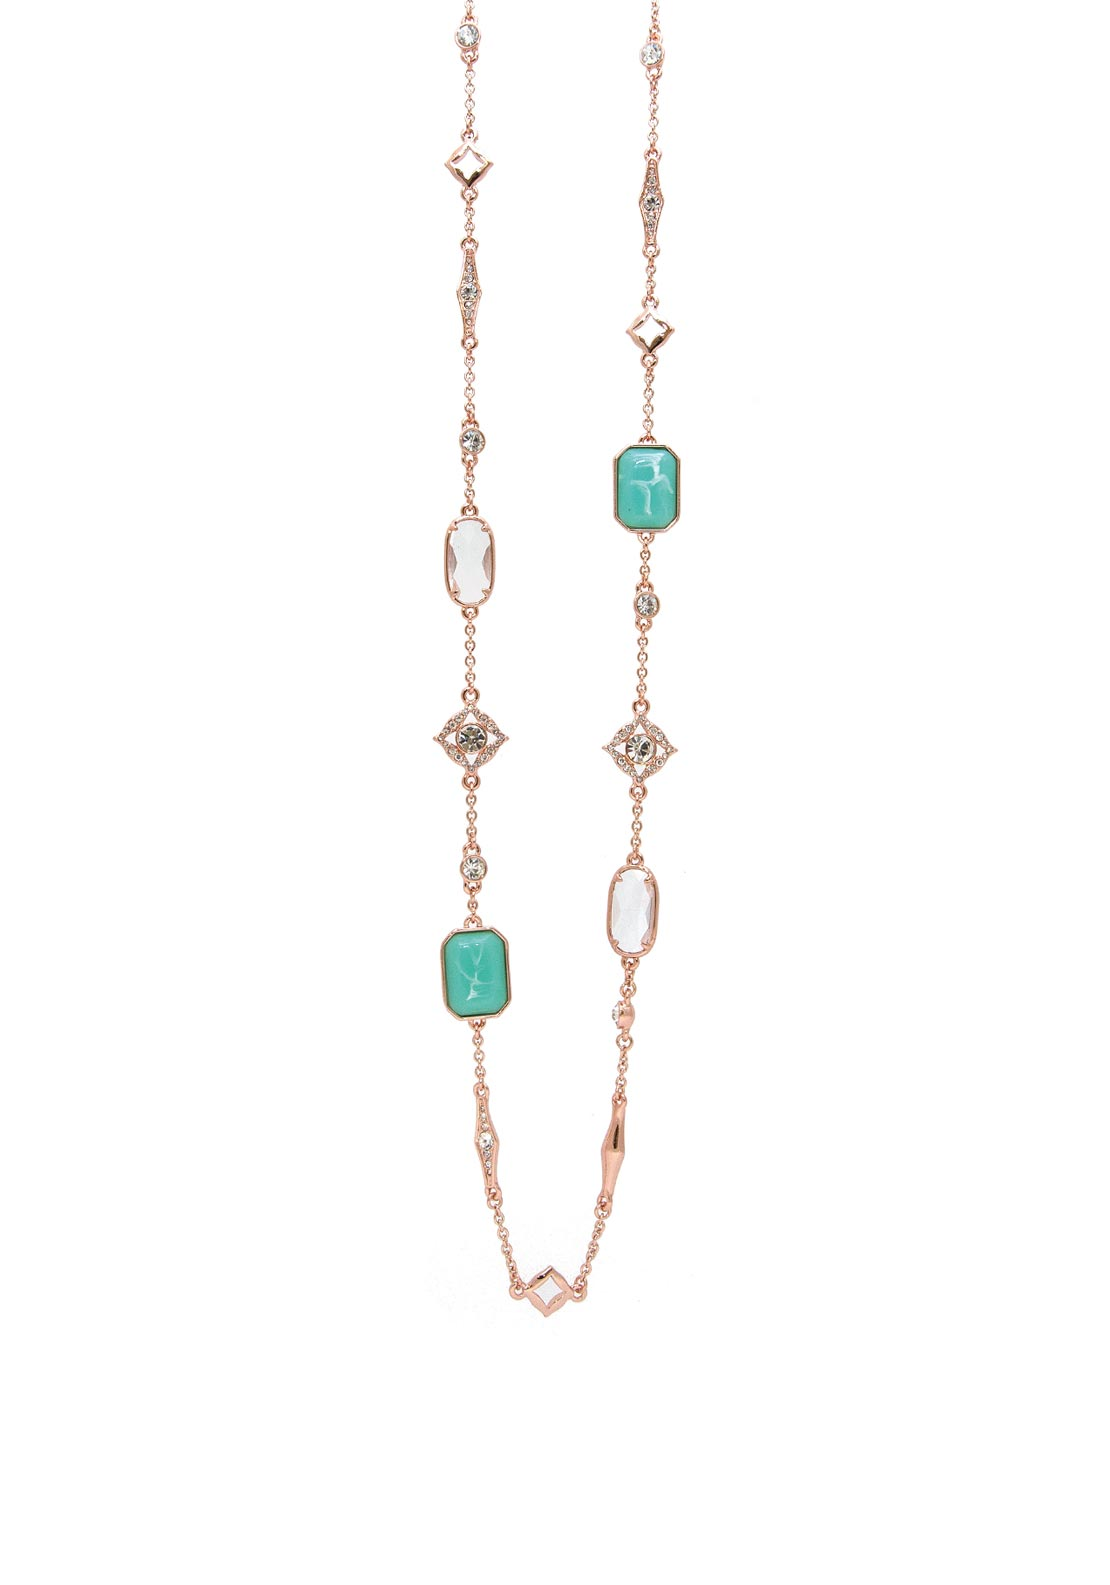 Absolute Long Chain, Rose Gold & Turquoise